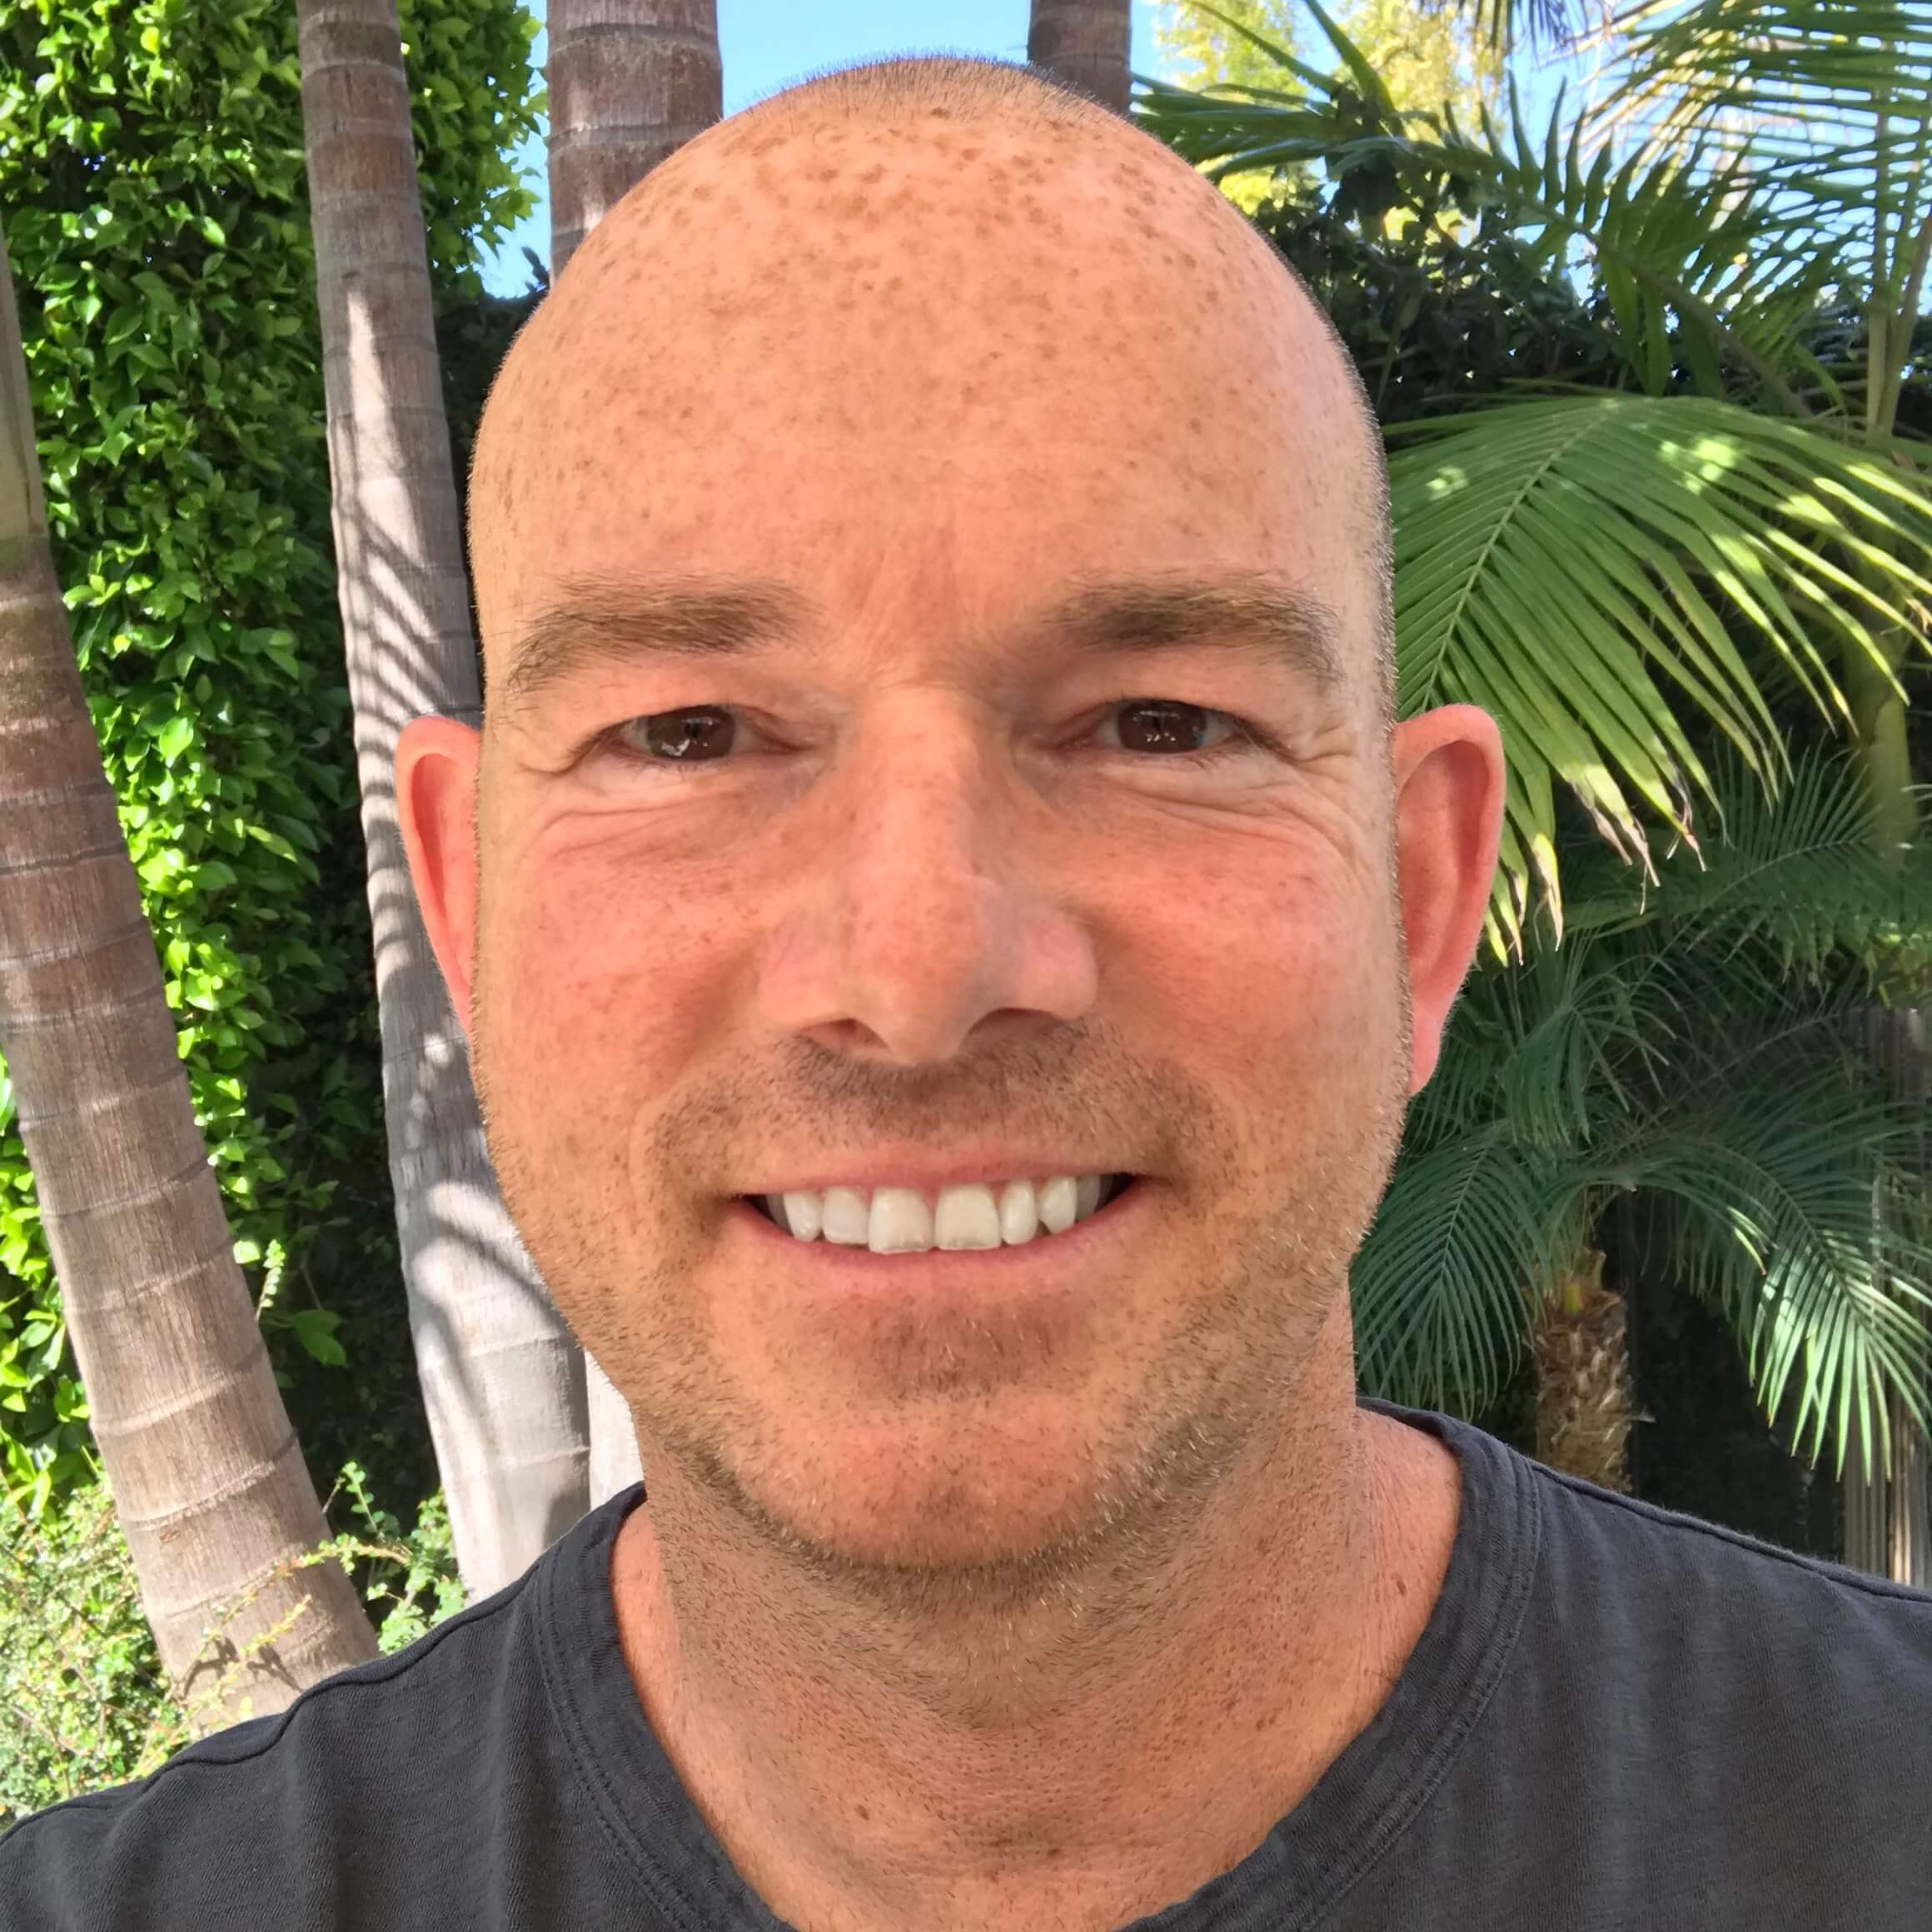 Heat-Not-Burn: A Q&A with Mike Simpson, CEO and Co-Founder of Omura